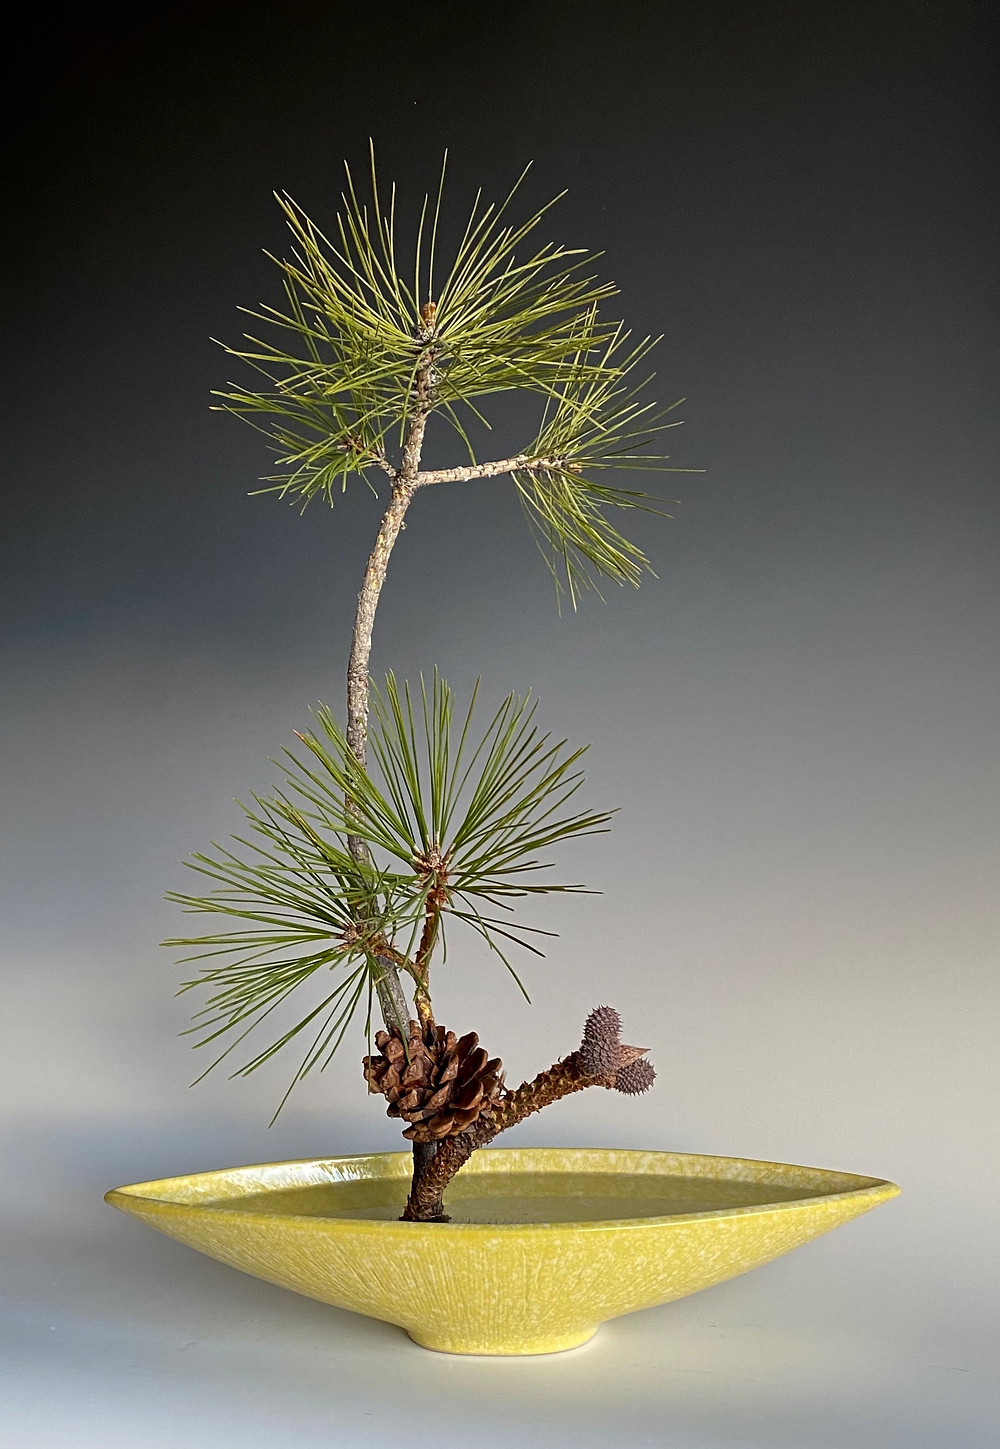 Japanese Ikebana with Ponderosa pine and modern vase.